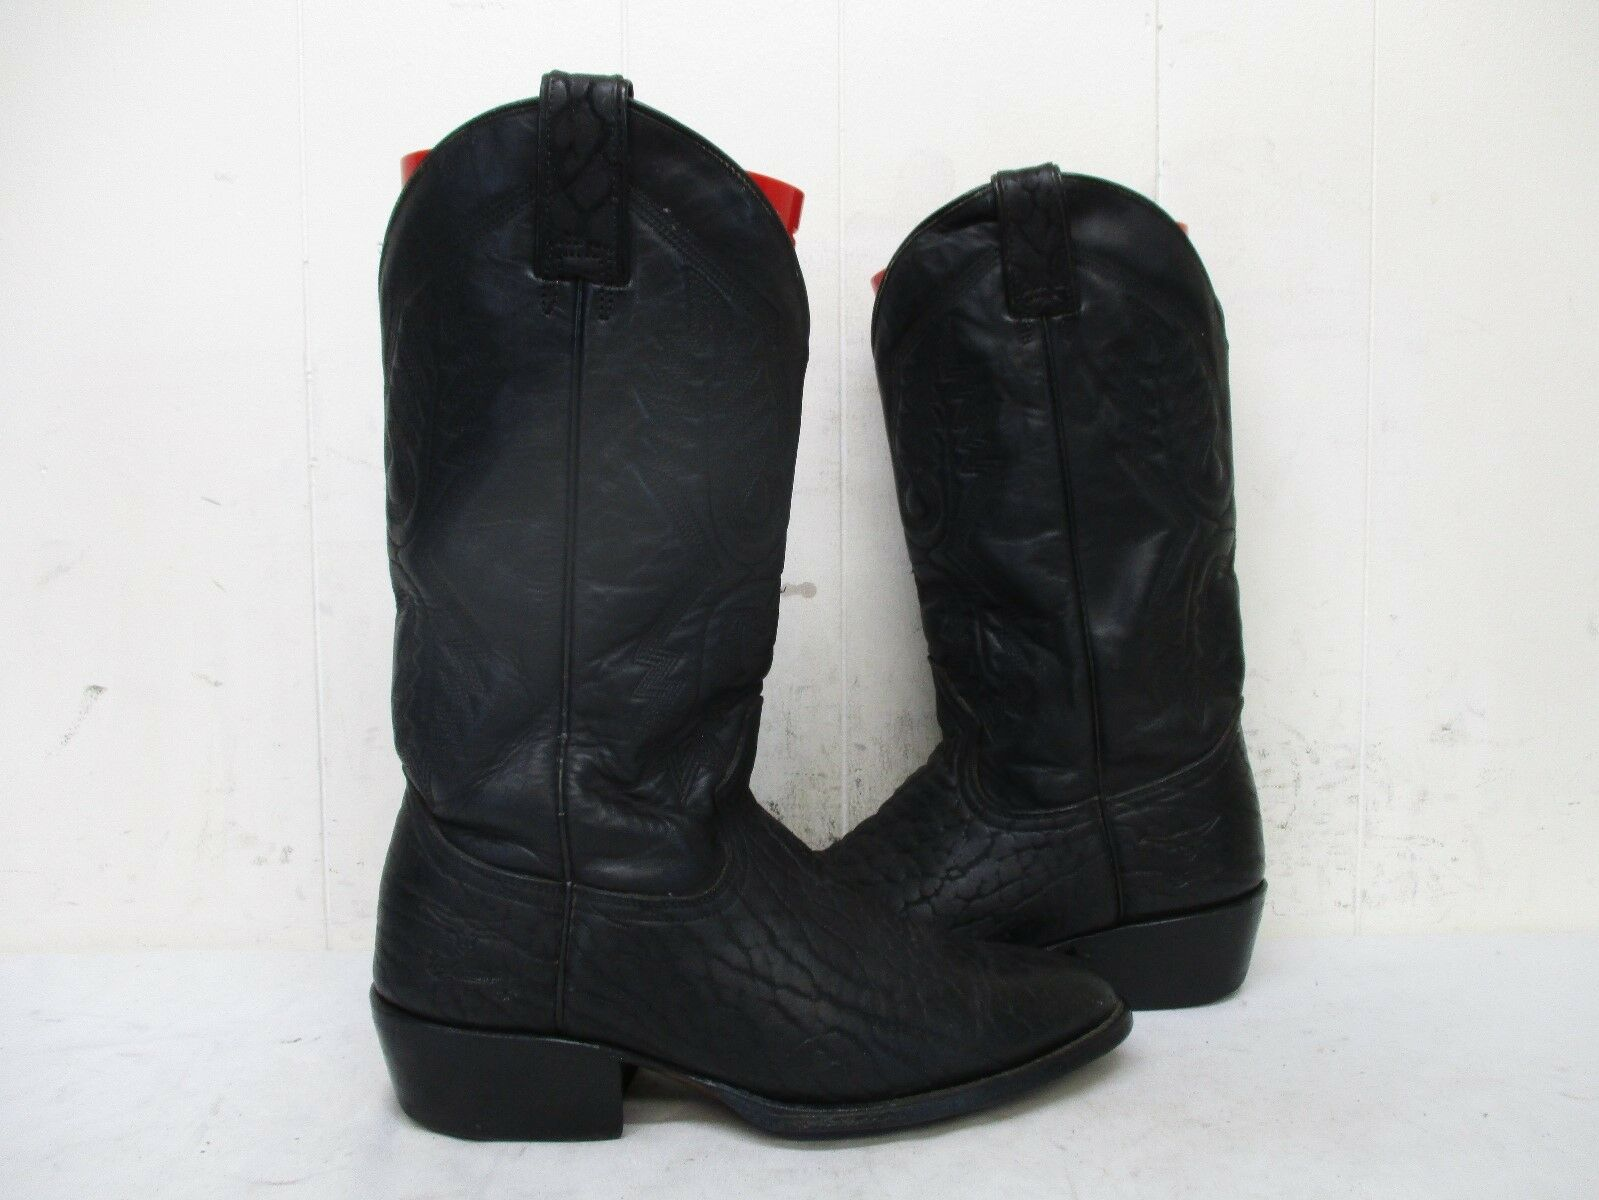 Rio Grande Black Leather Cowboy Boots Mens Size 26 Mexico